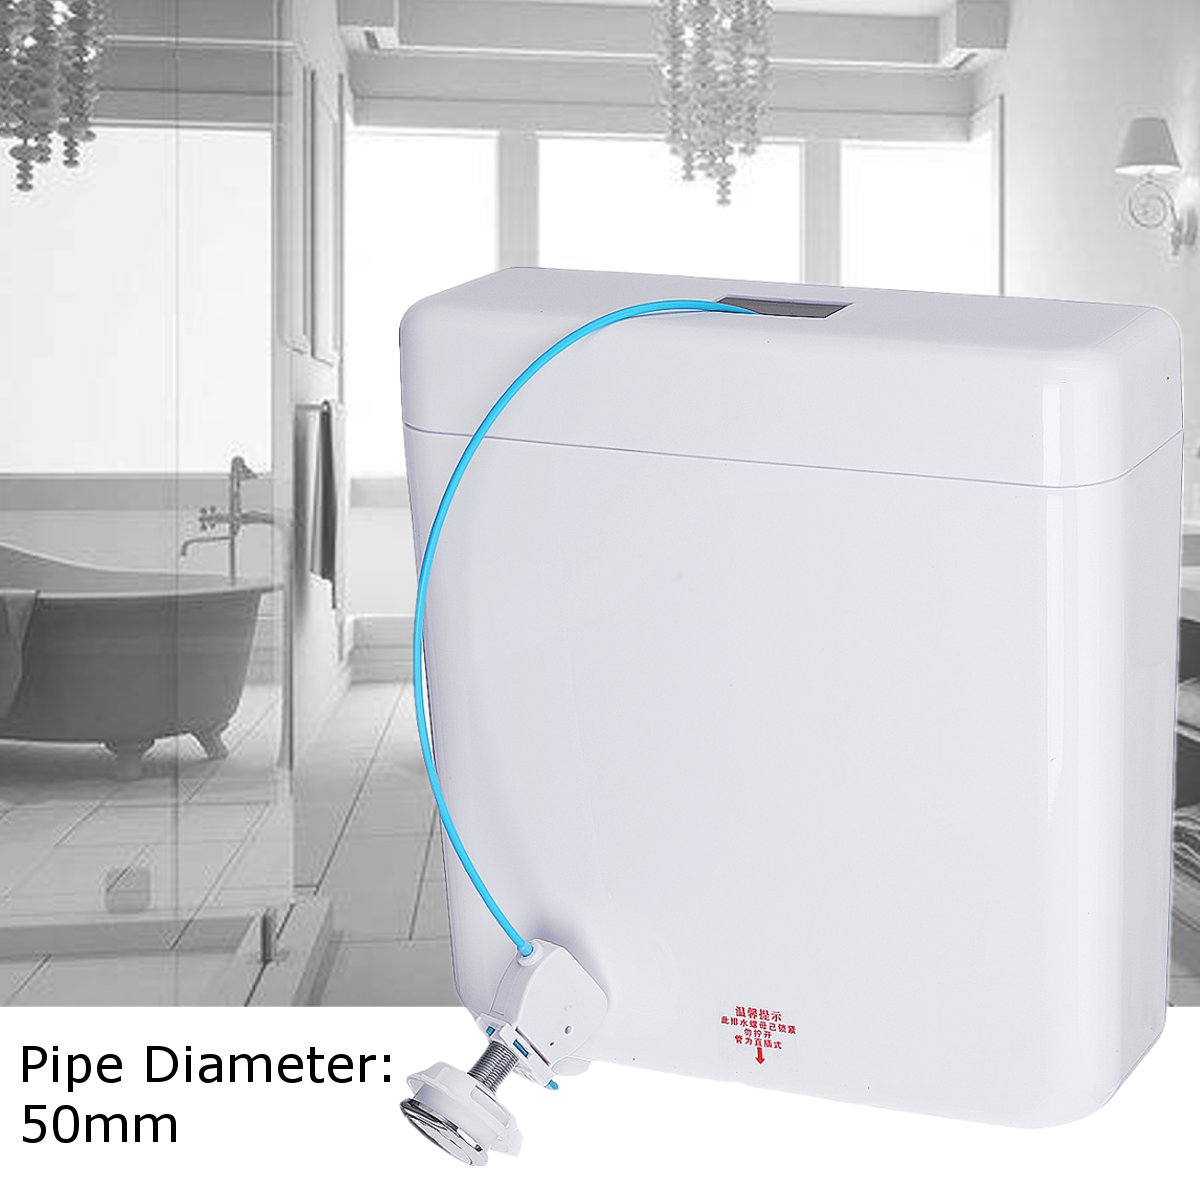 Dual Flush Back To Wall Manual Concealed Toilet Cistern Water Tank Bathroom Fixture Water Tank Toilet Parts Hotel Home